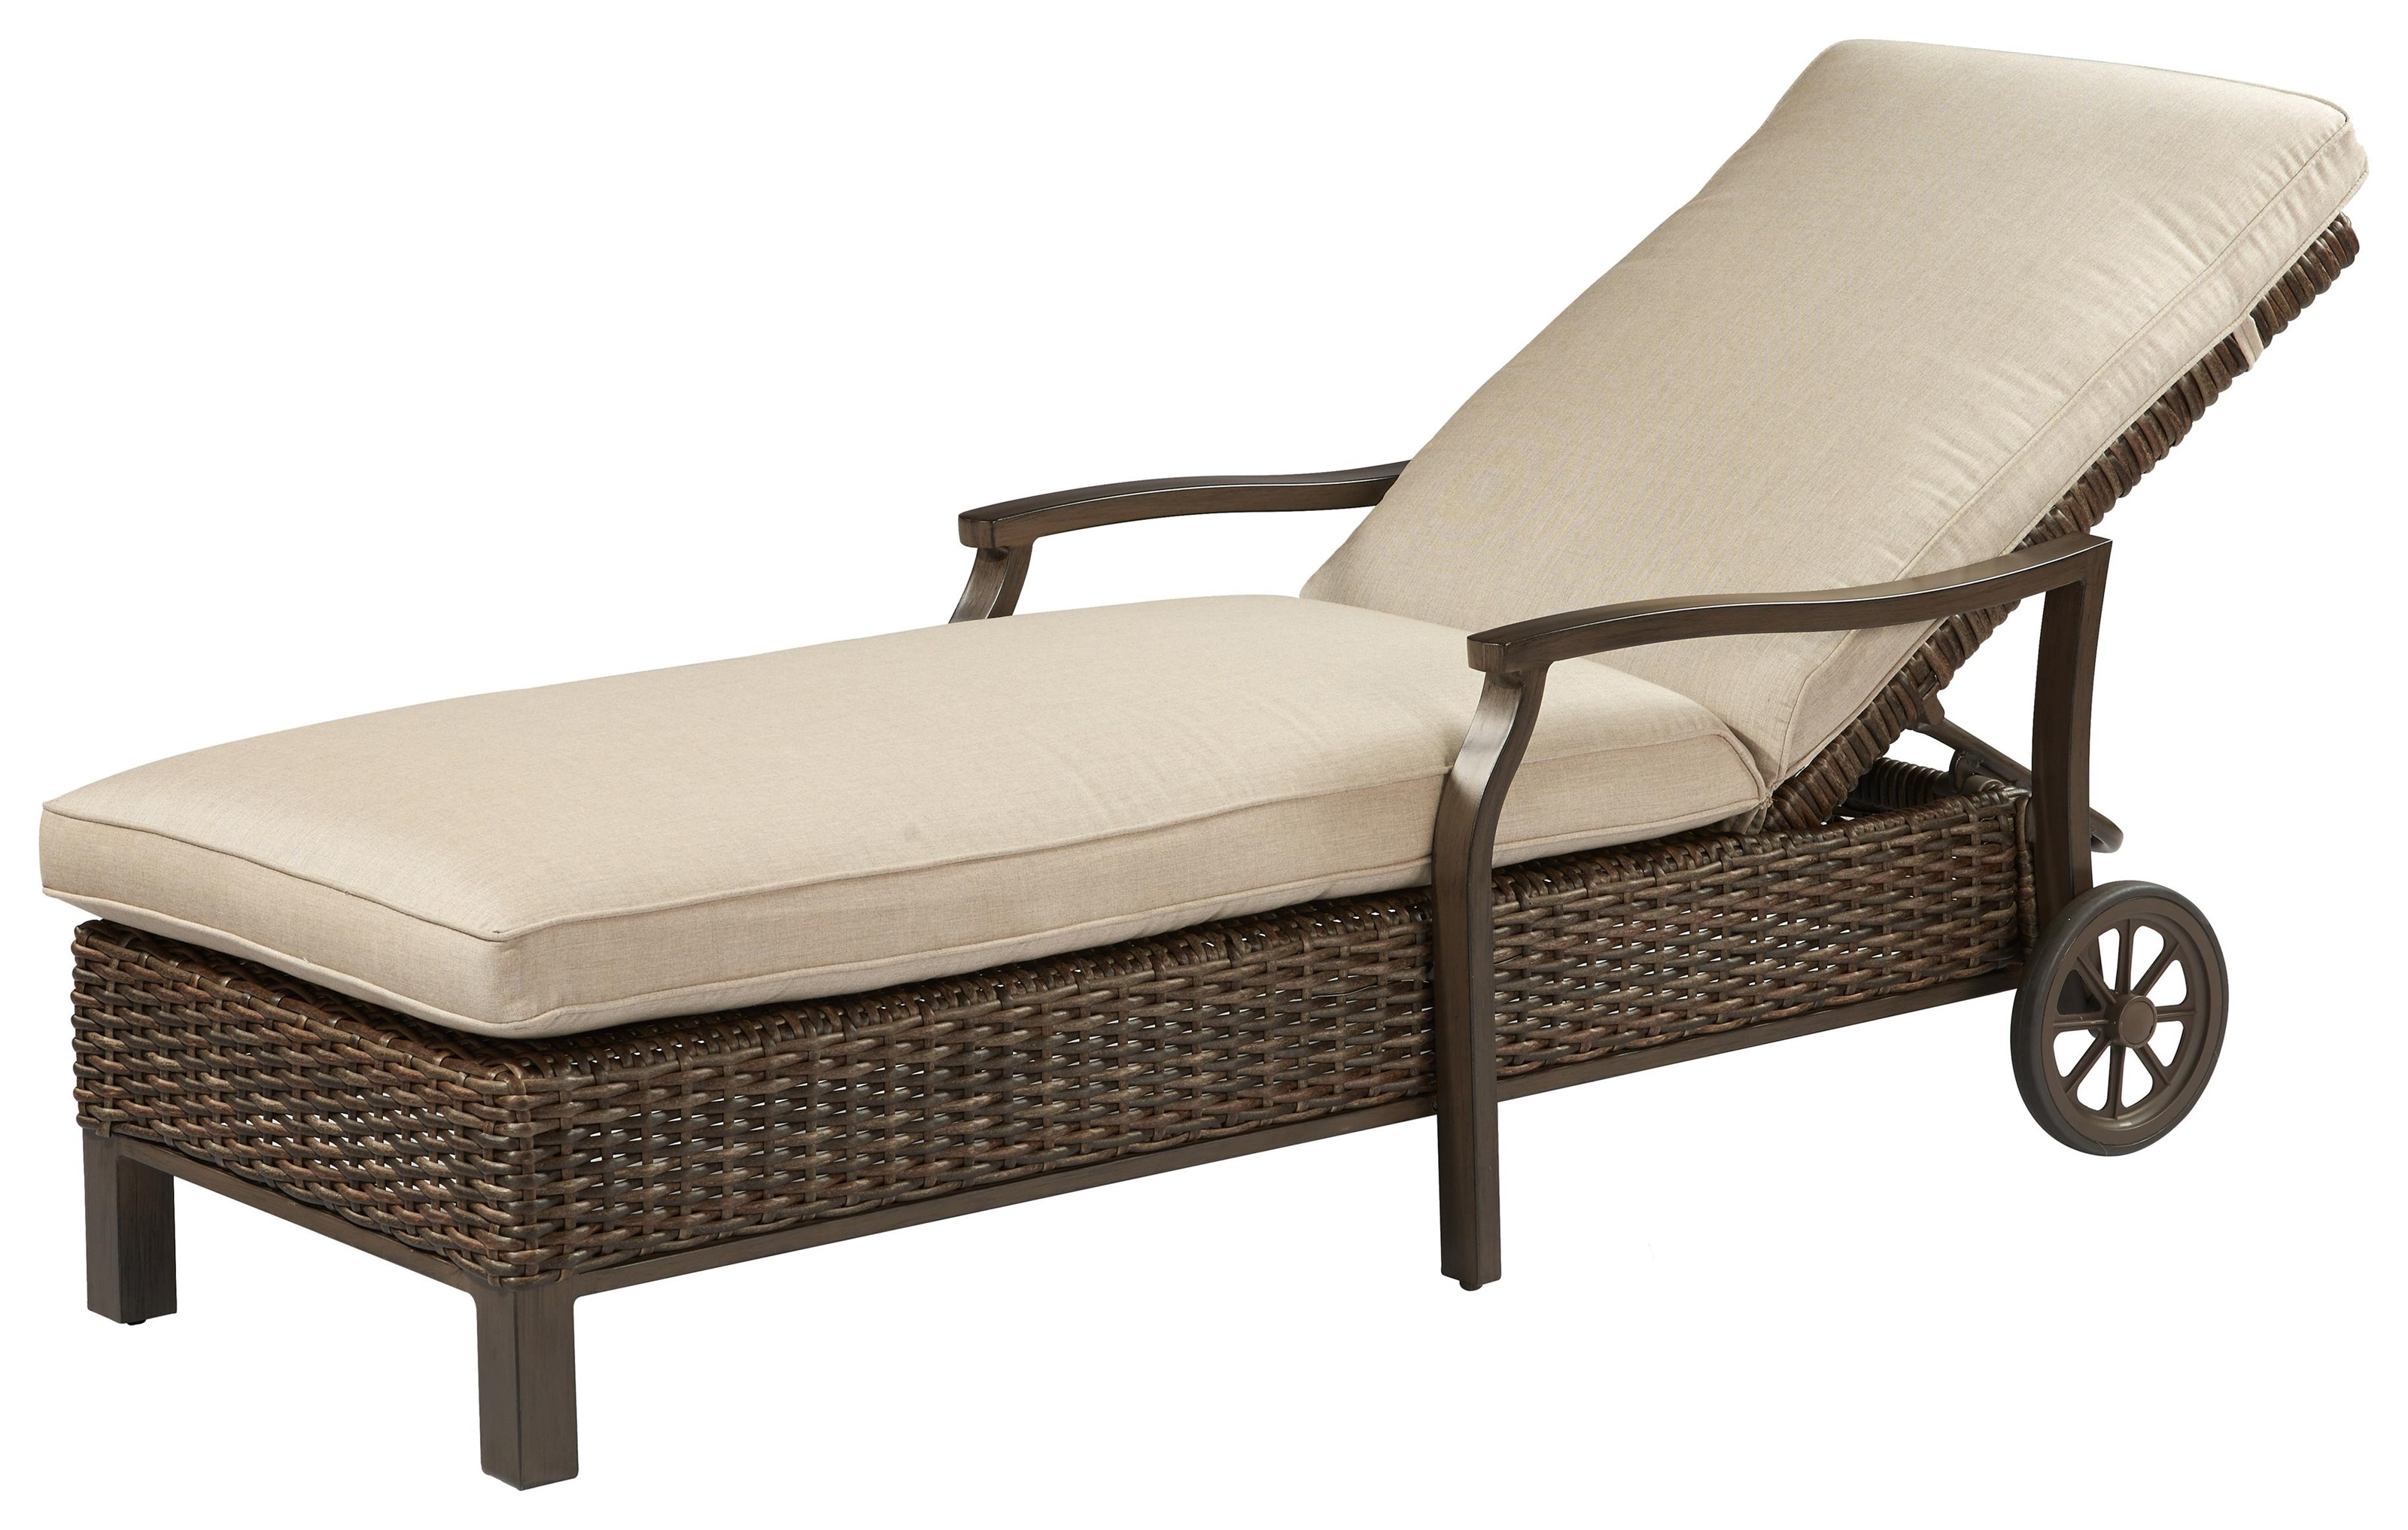 Trenton Chaise Lounge by Apricity Outdoor at Johnny Janosik